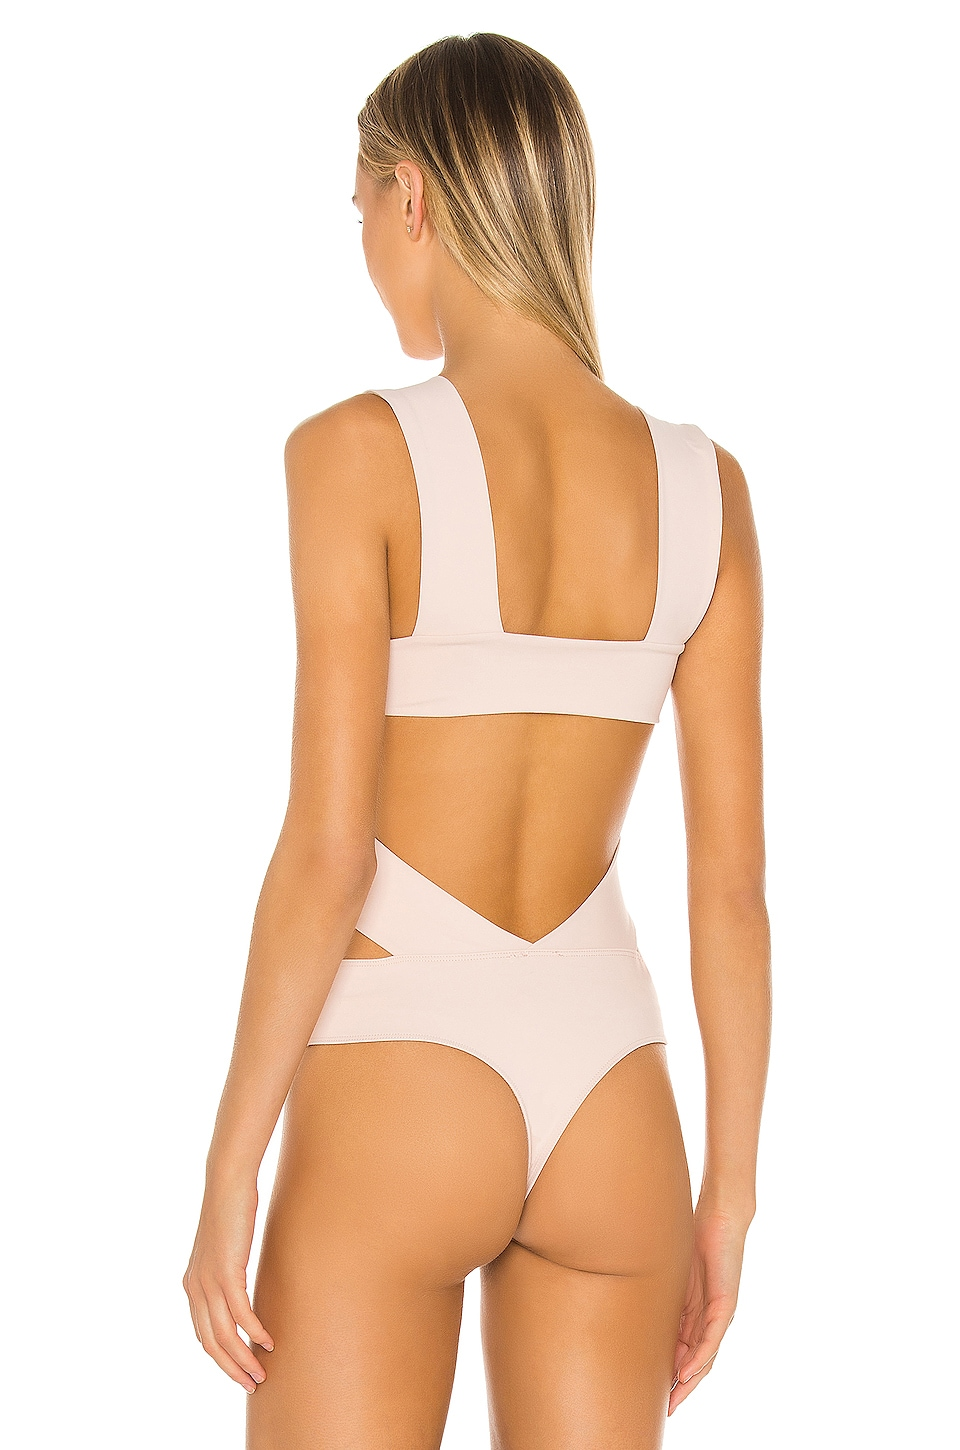 Oh Shes Strappy Bodysuit, view 4, click to view large image.